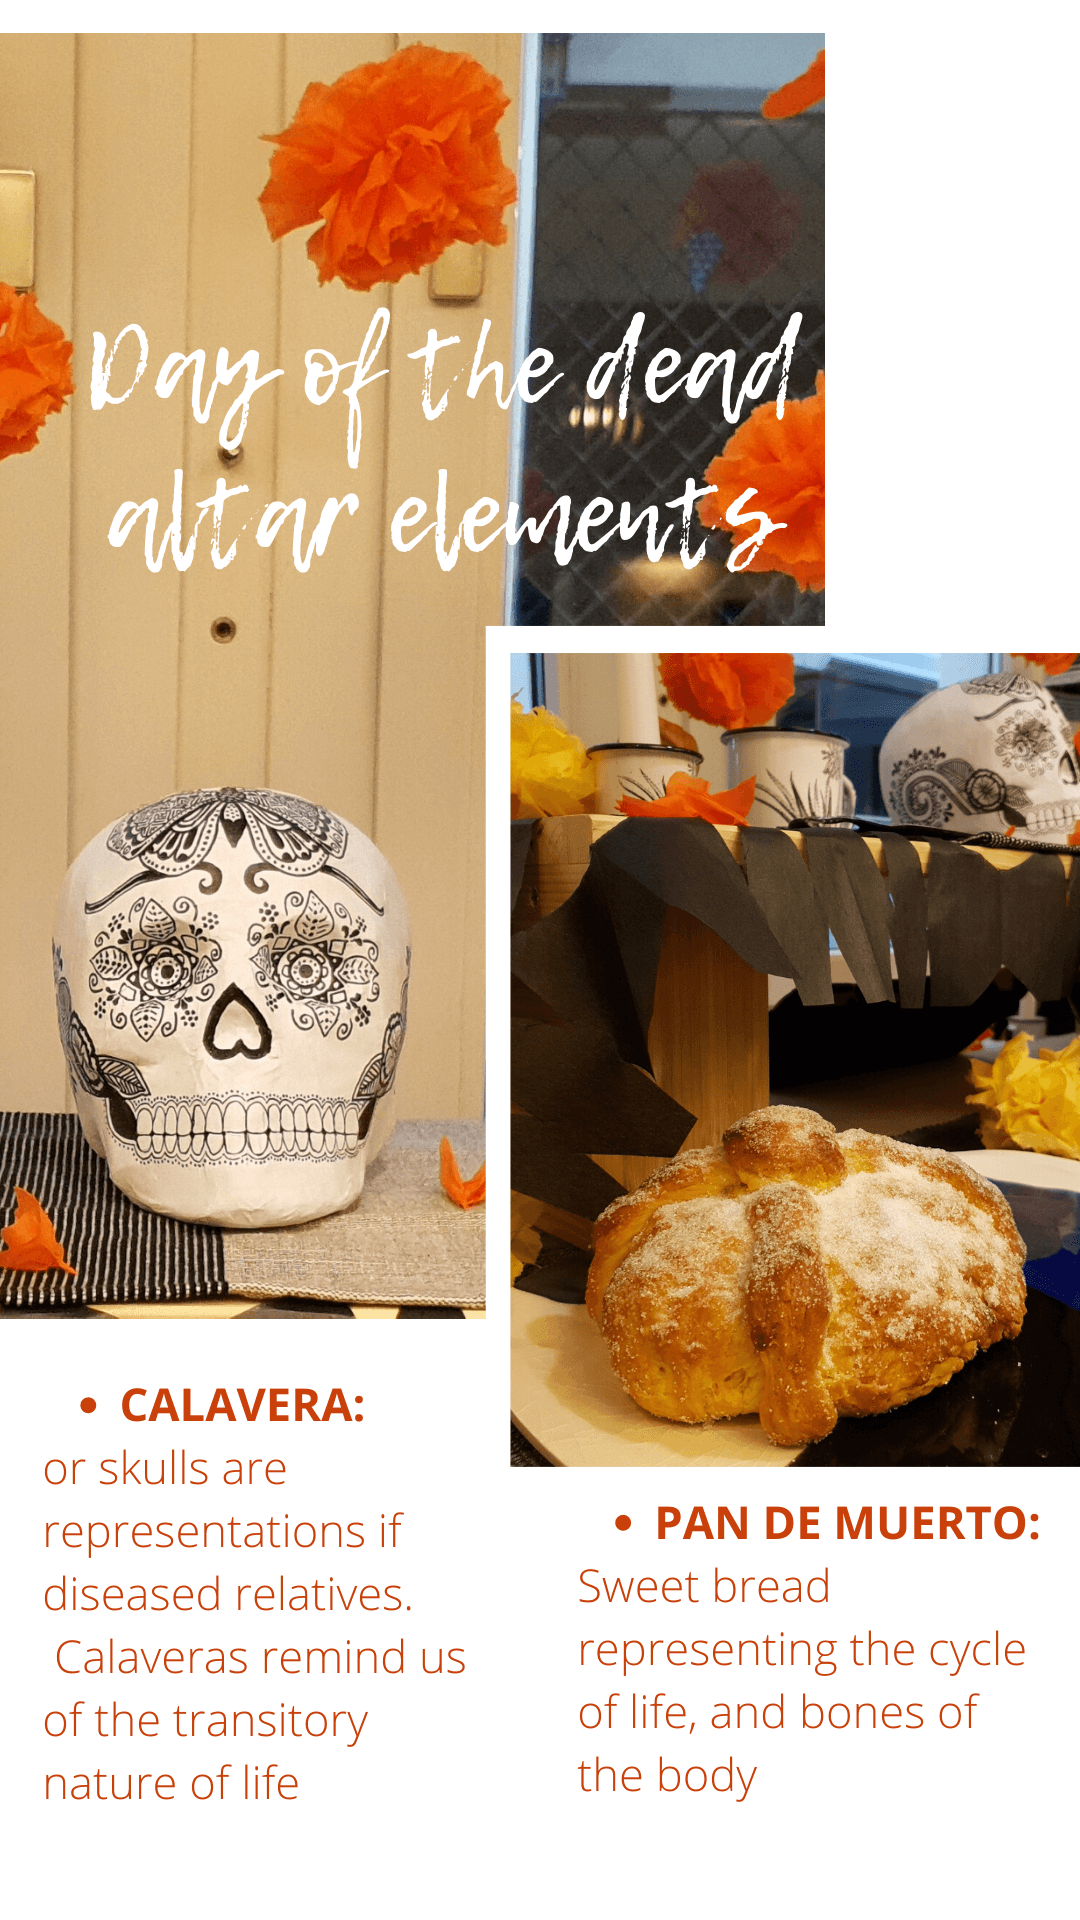 Day of the dead altar elements, calavera, pan de muerto